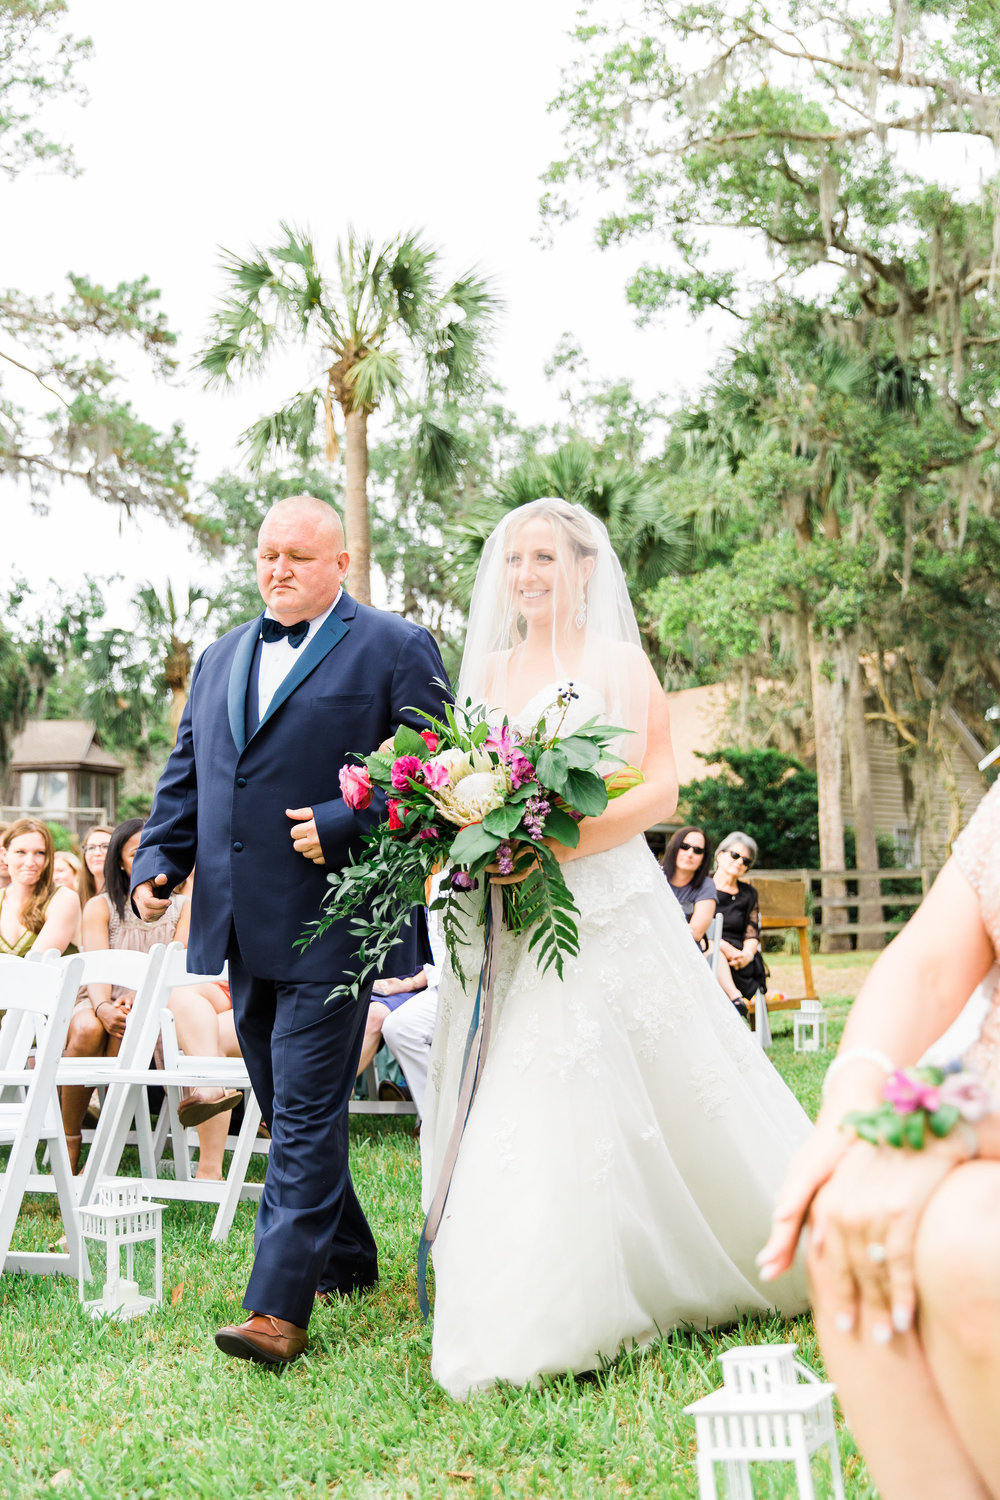 savannah-bridal-shop-i-and-b-couple-gretchen-and-alex-fun-and-unique-tropical-wedding-at-captains-bluff-st-simons-island-wedding-marianne-lucille-photography-22.jpg